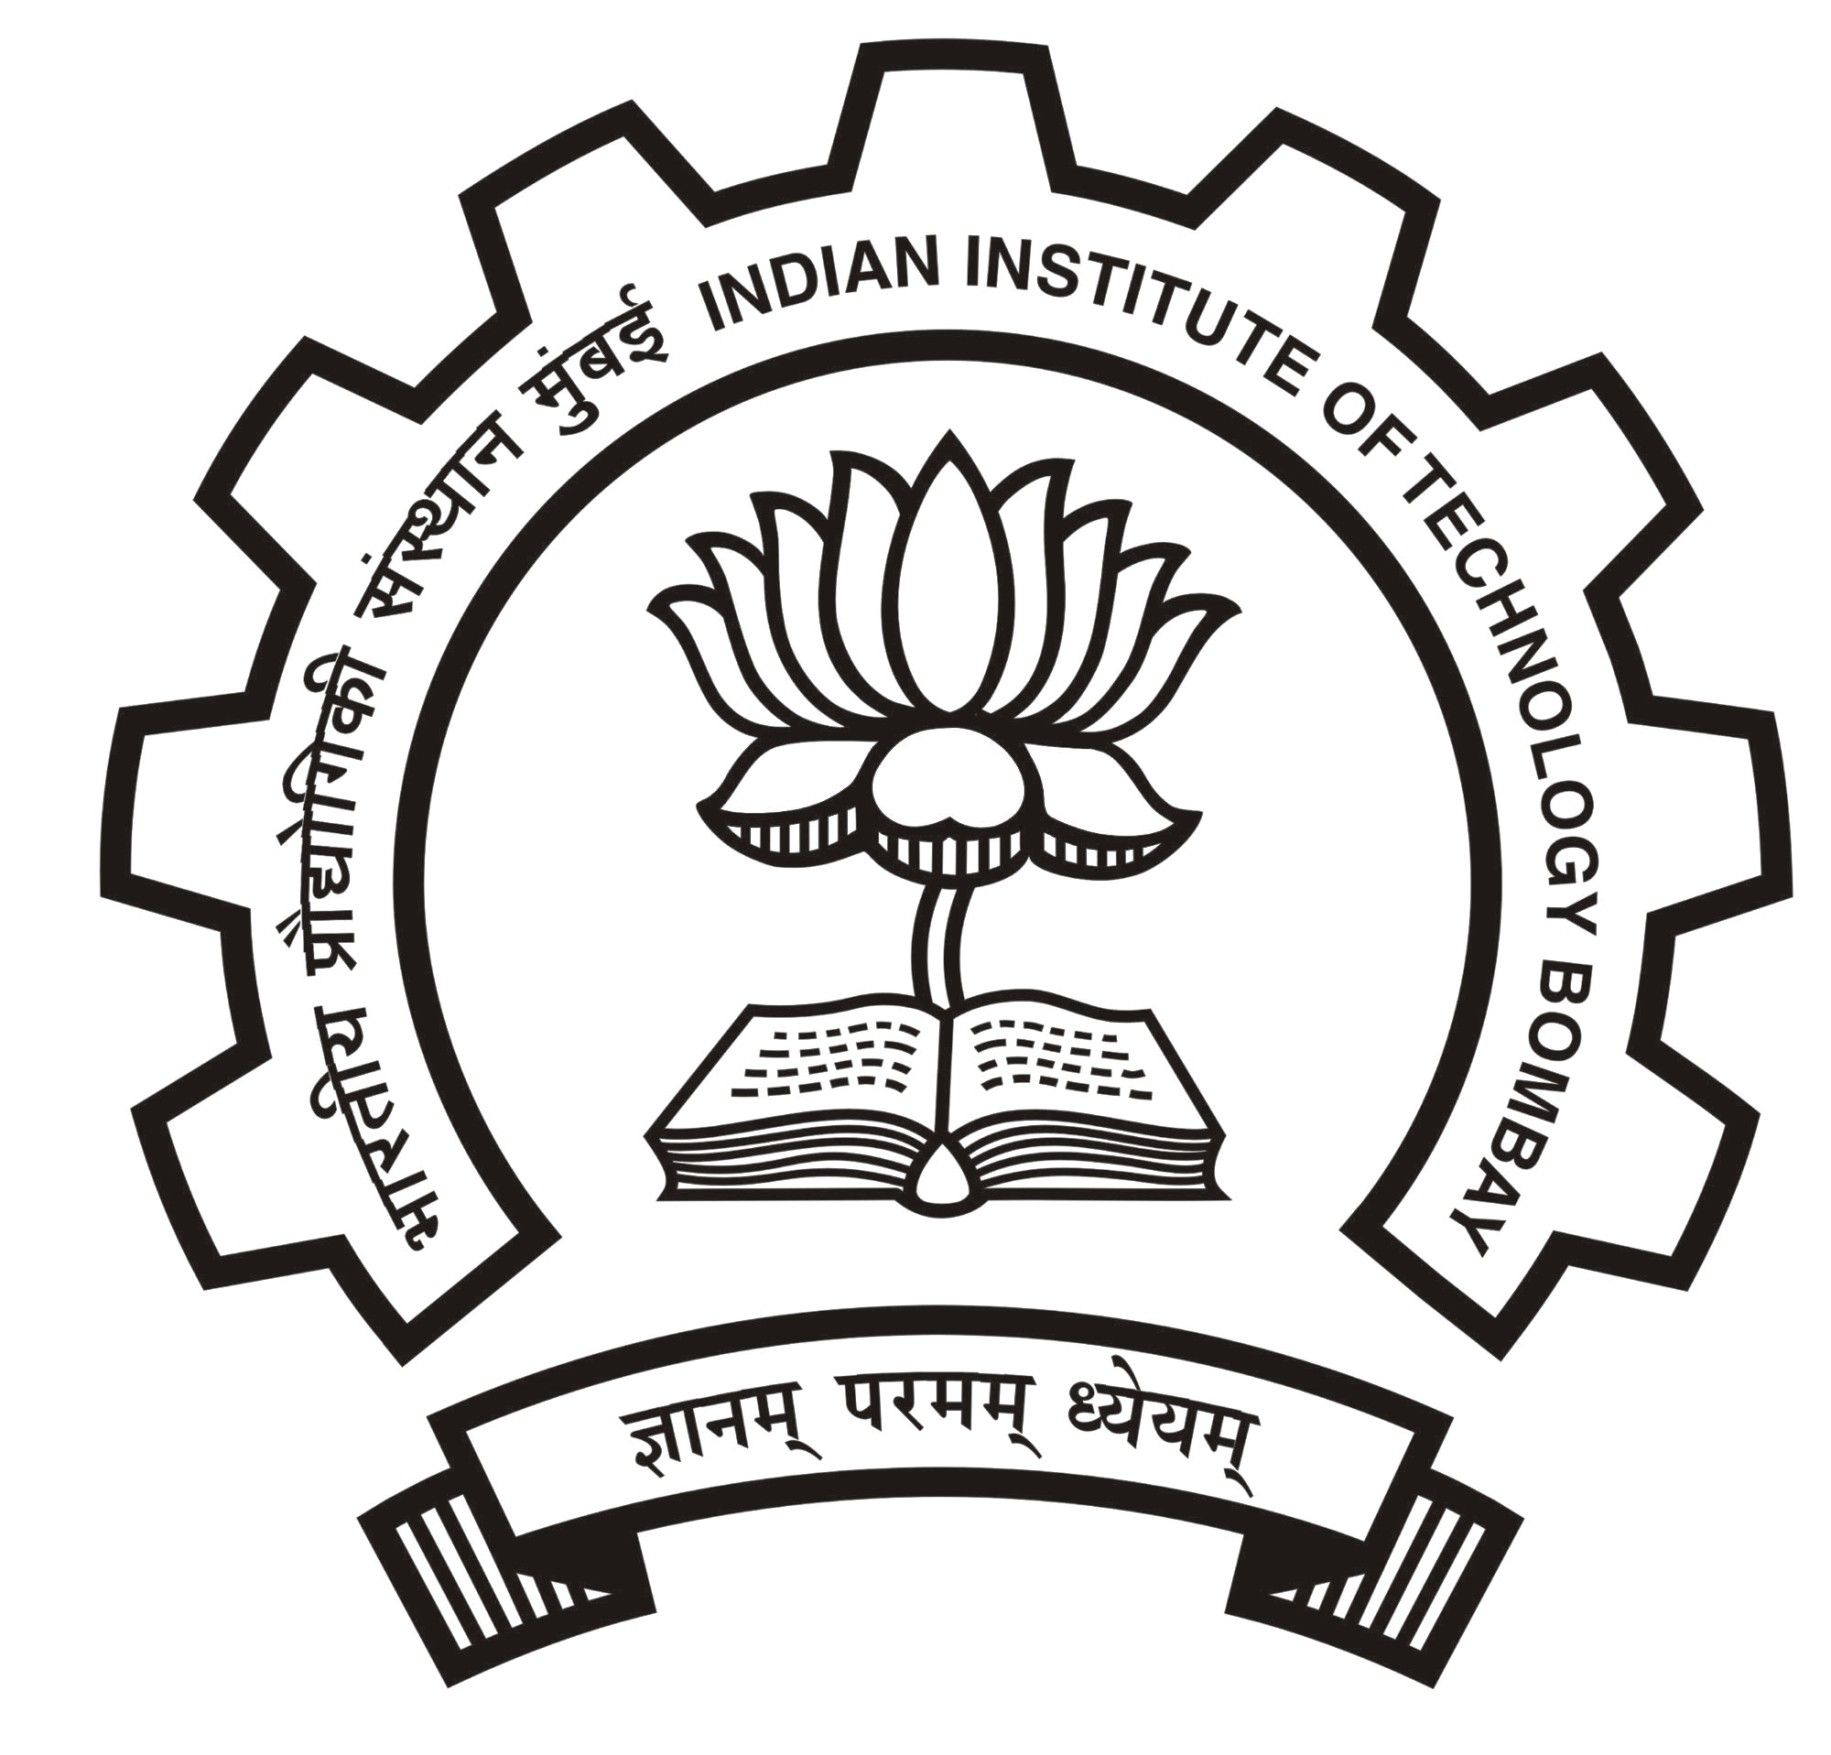 Bombay, Cut Off, Gate 2012, How To Apply, Iit Bombay M Tech encequiconcerne Bo Programmes 2012